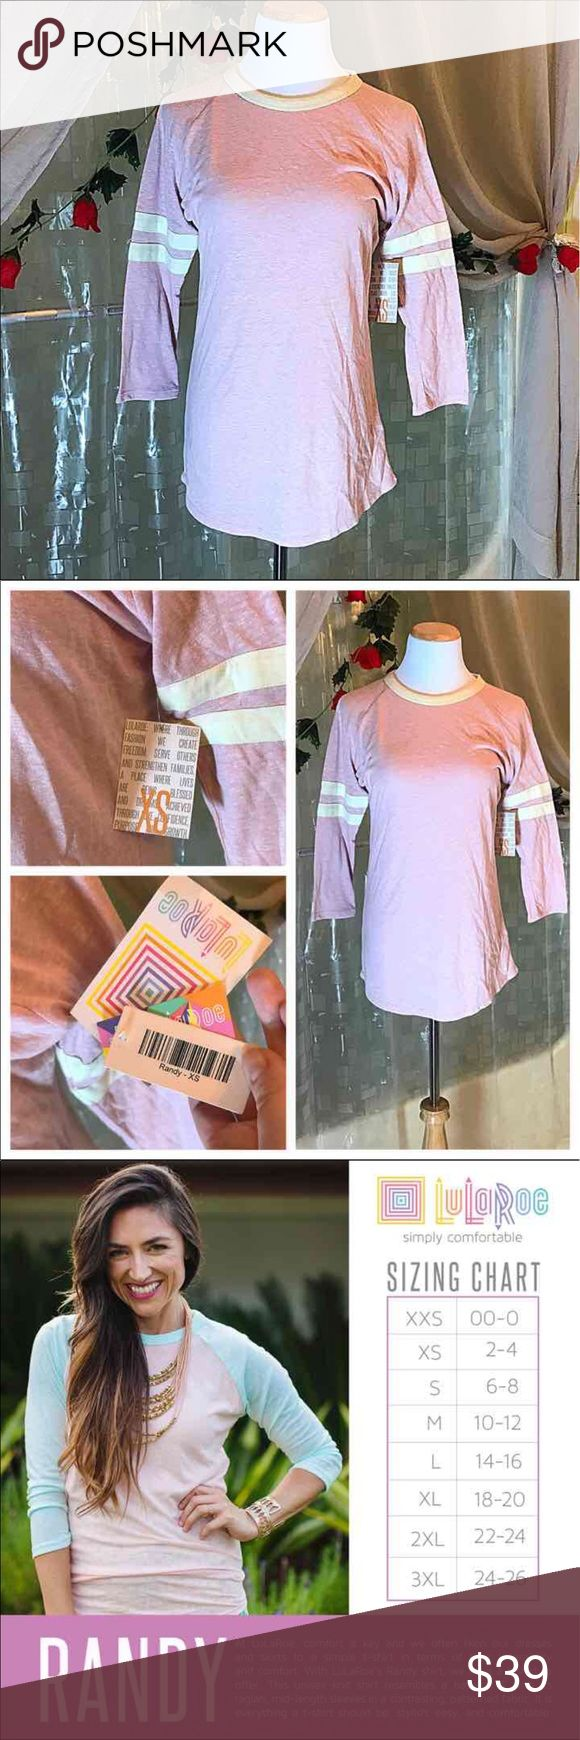 LuLaRoe RANDY NWT pink and cream stripes XS Brand new, never worn, perfect condition LLR XS RANDY. would likely also fit XXS & S. Is light pink with cream / off white stripes on sleeves and crew neck collar. It is a baseball style comfortable tee with 3/4 reglan like sleeves. It is super comfortable and a great fit knit top. Great for layering. Is lightweight. Would go great with so many LuLaRoe leggings or shorts. I paid abt $50 for this. LuLaRoe Tops Tees - Long Sleeve